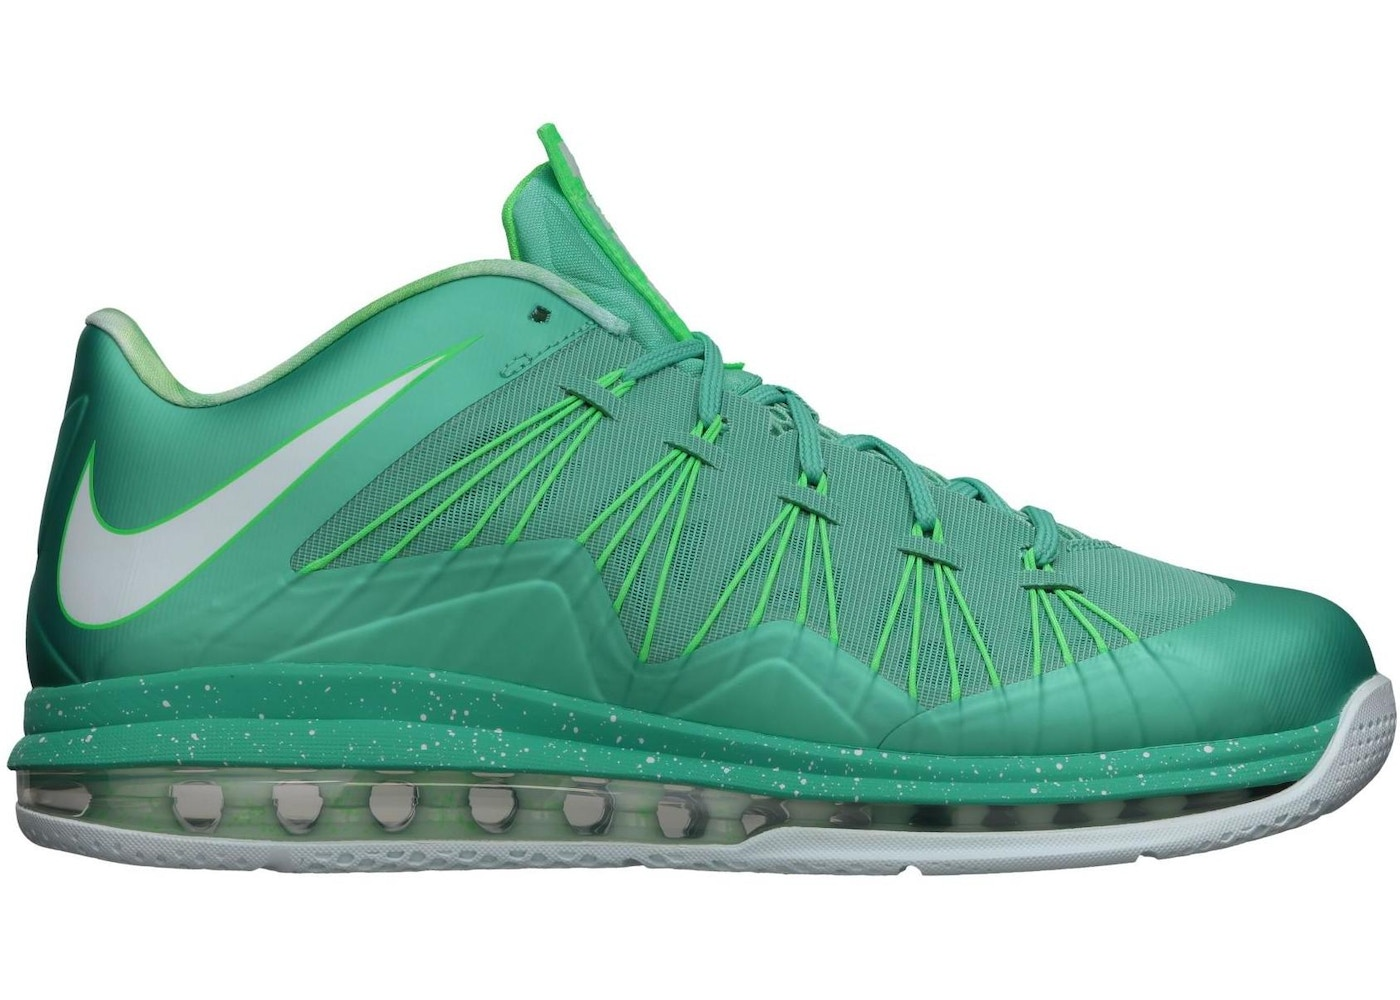 timeless design 199c8 07496 LeBron X Low Easter